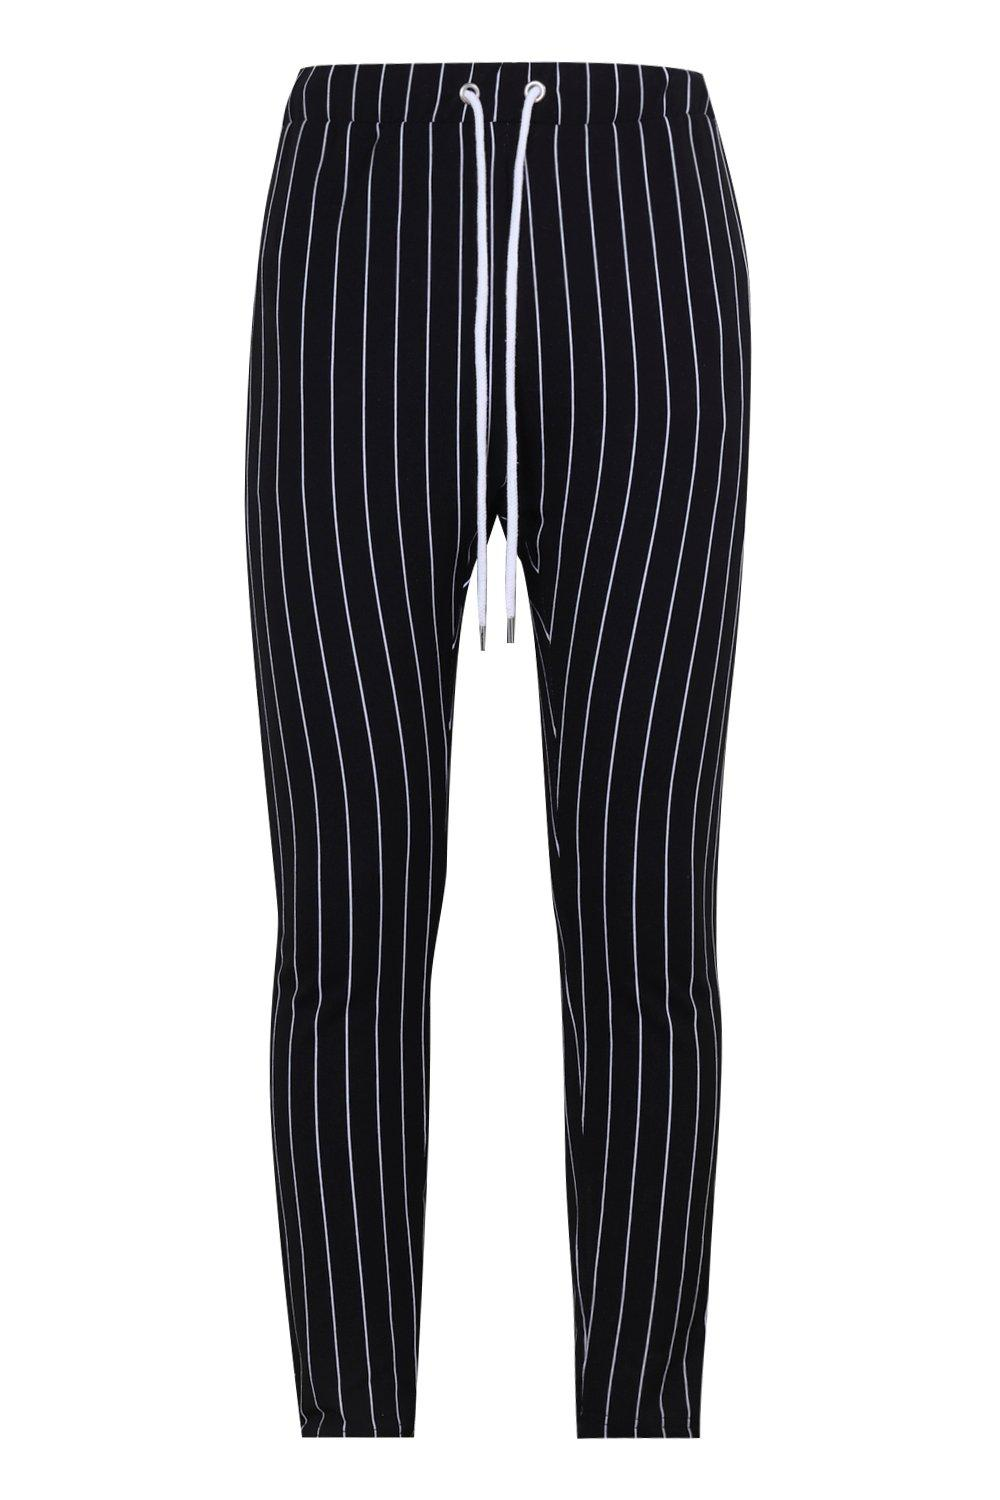 Skinny black Joggers Fit Striped black Striped Skinny Joggers Skinny Fit Fit Striped qExRwXp